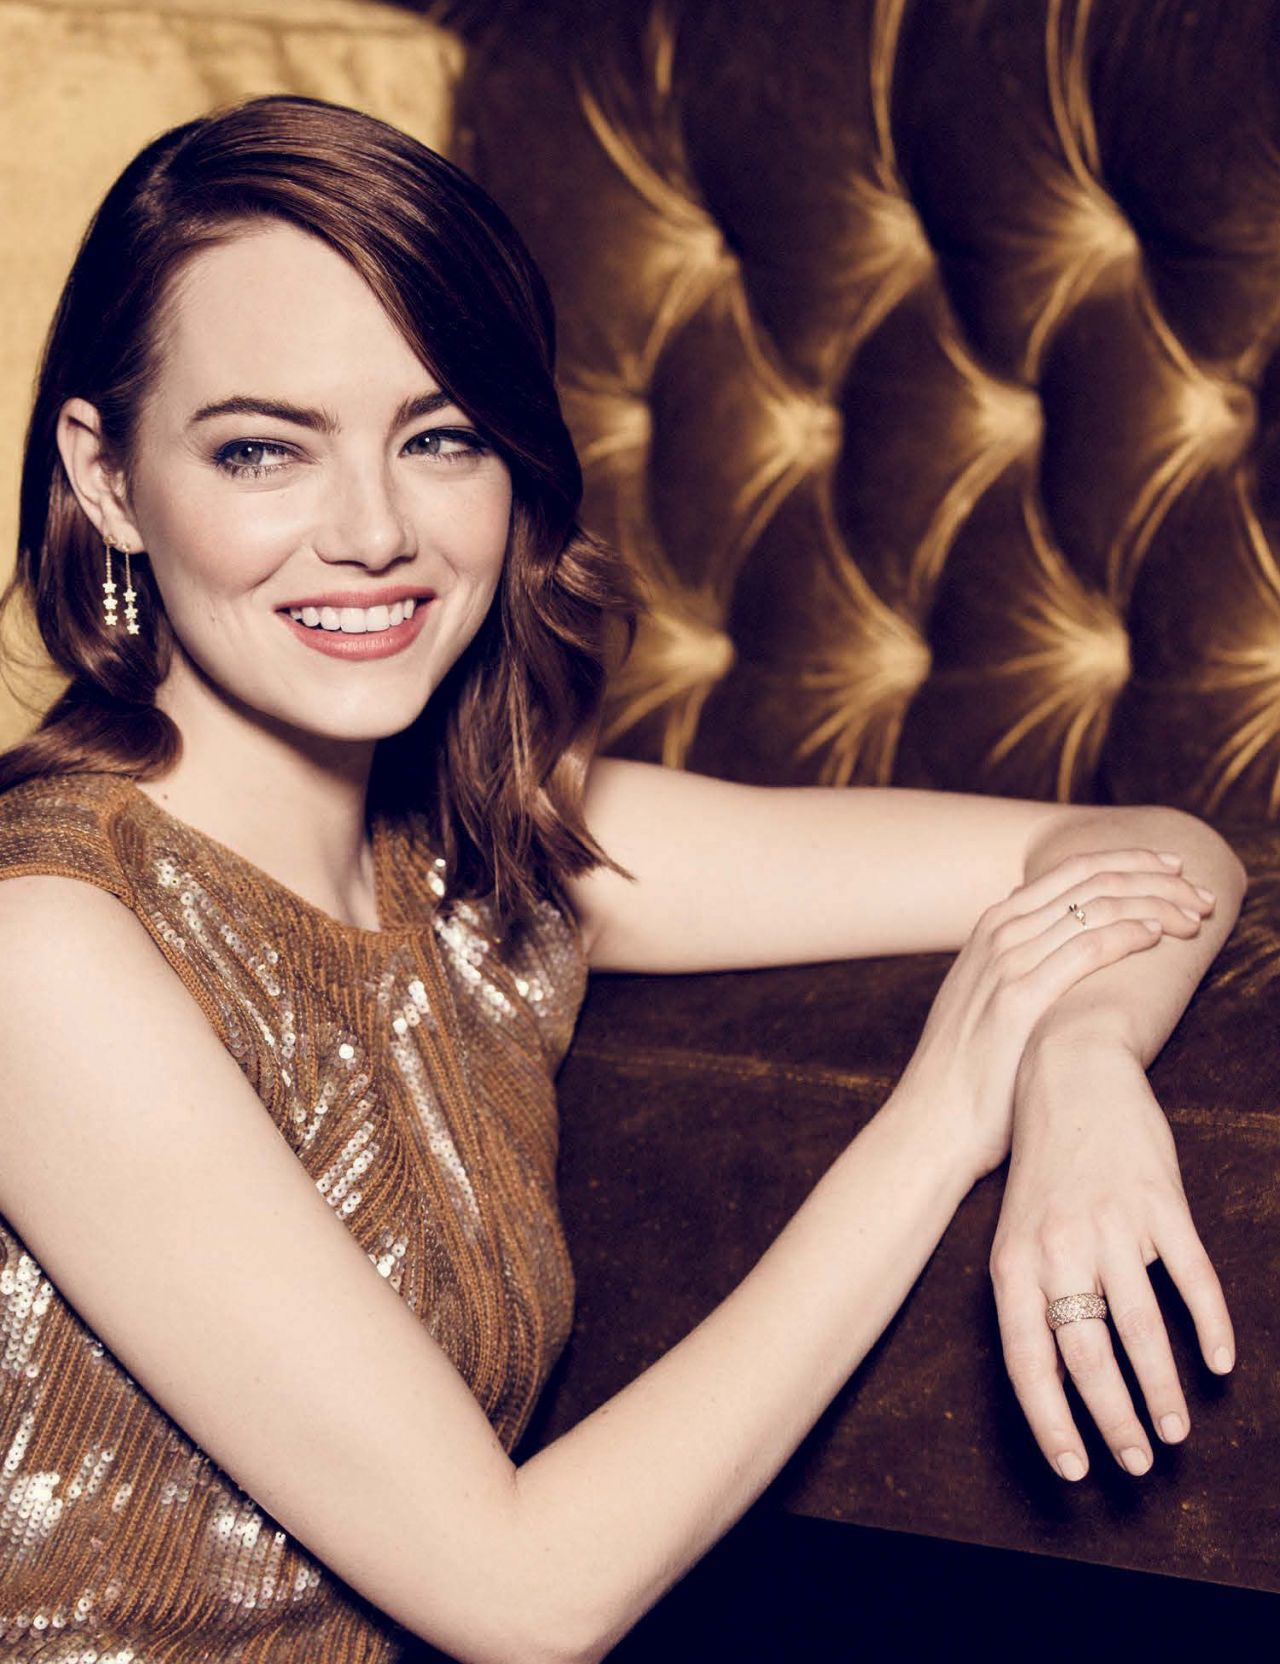 Emma Stone - The Hollywood Reporter February 2017 Issue Emma Stone